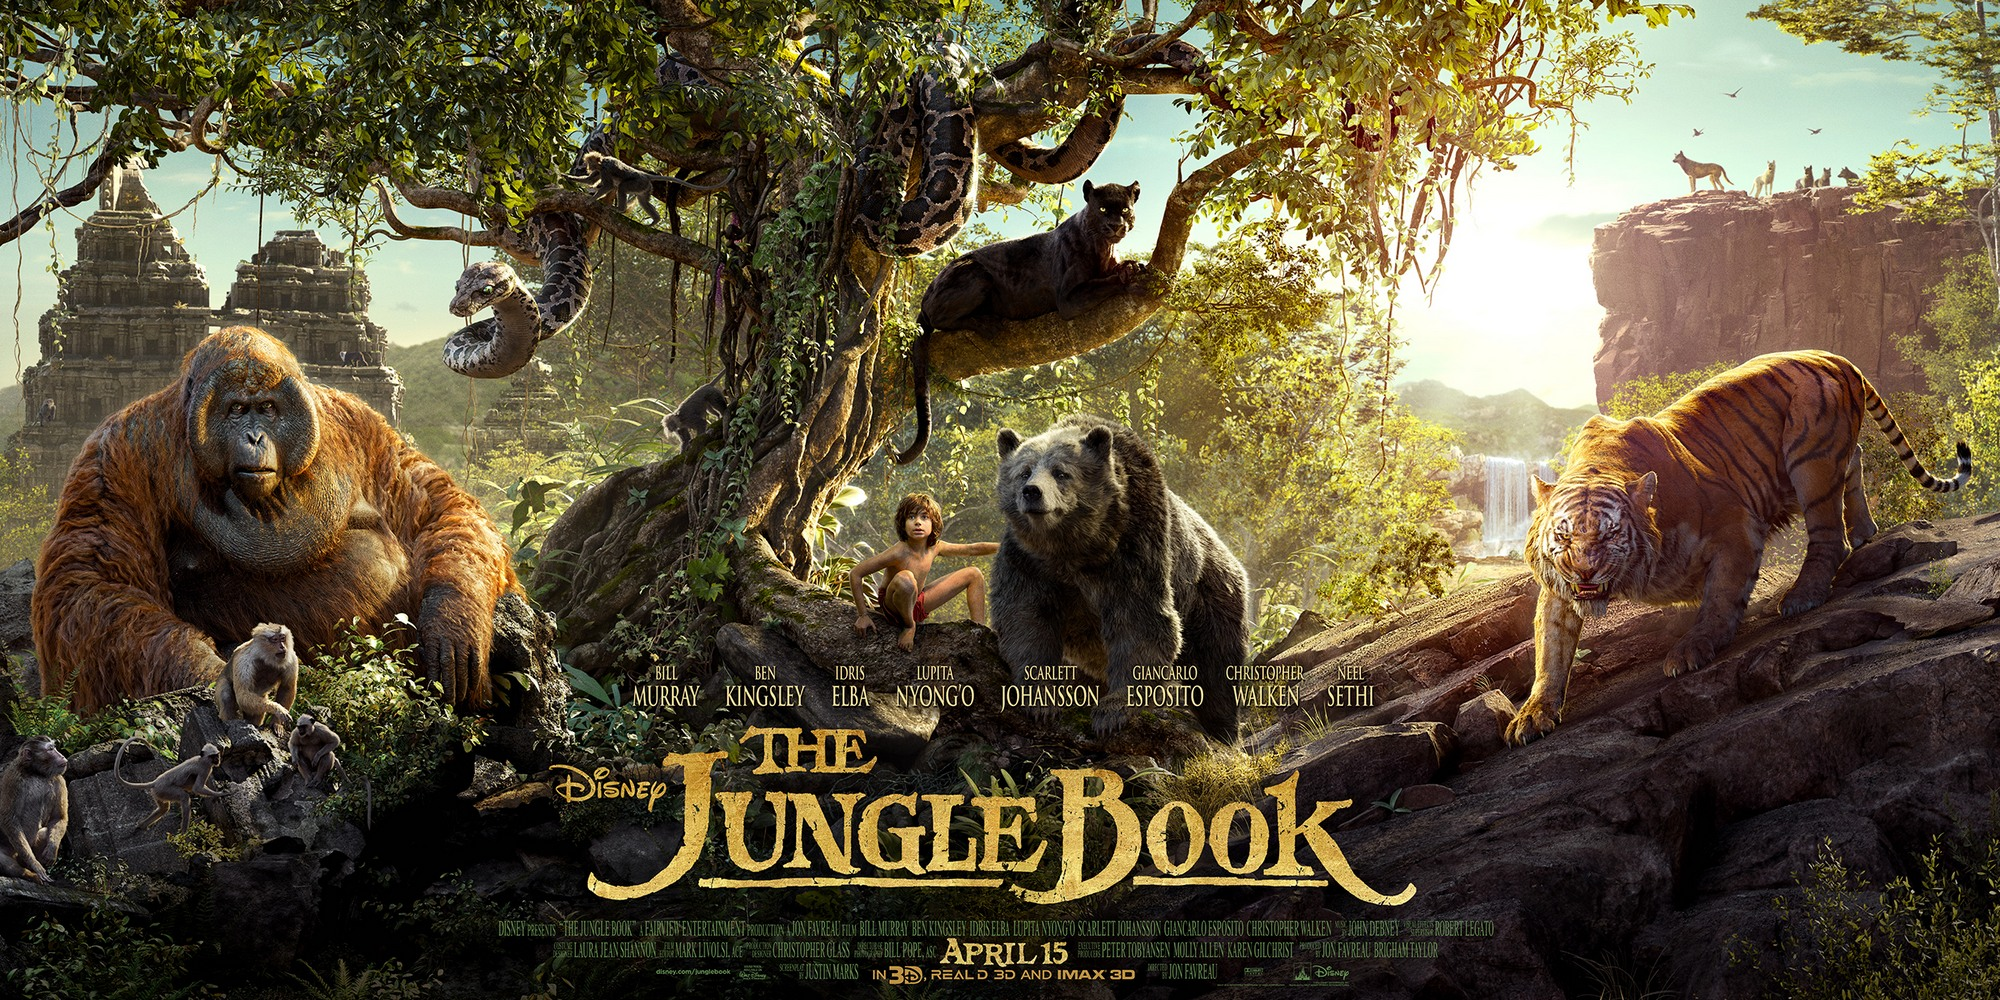 /images/upload/blog/1608/1608_the_jungle_book_triptych_poster.jpg